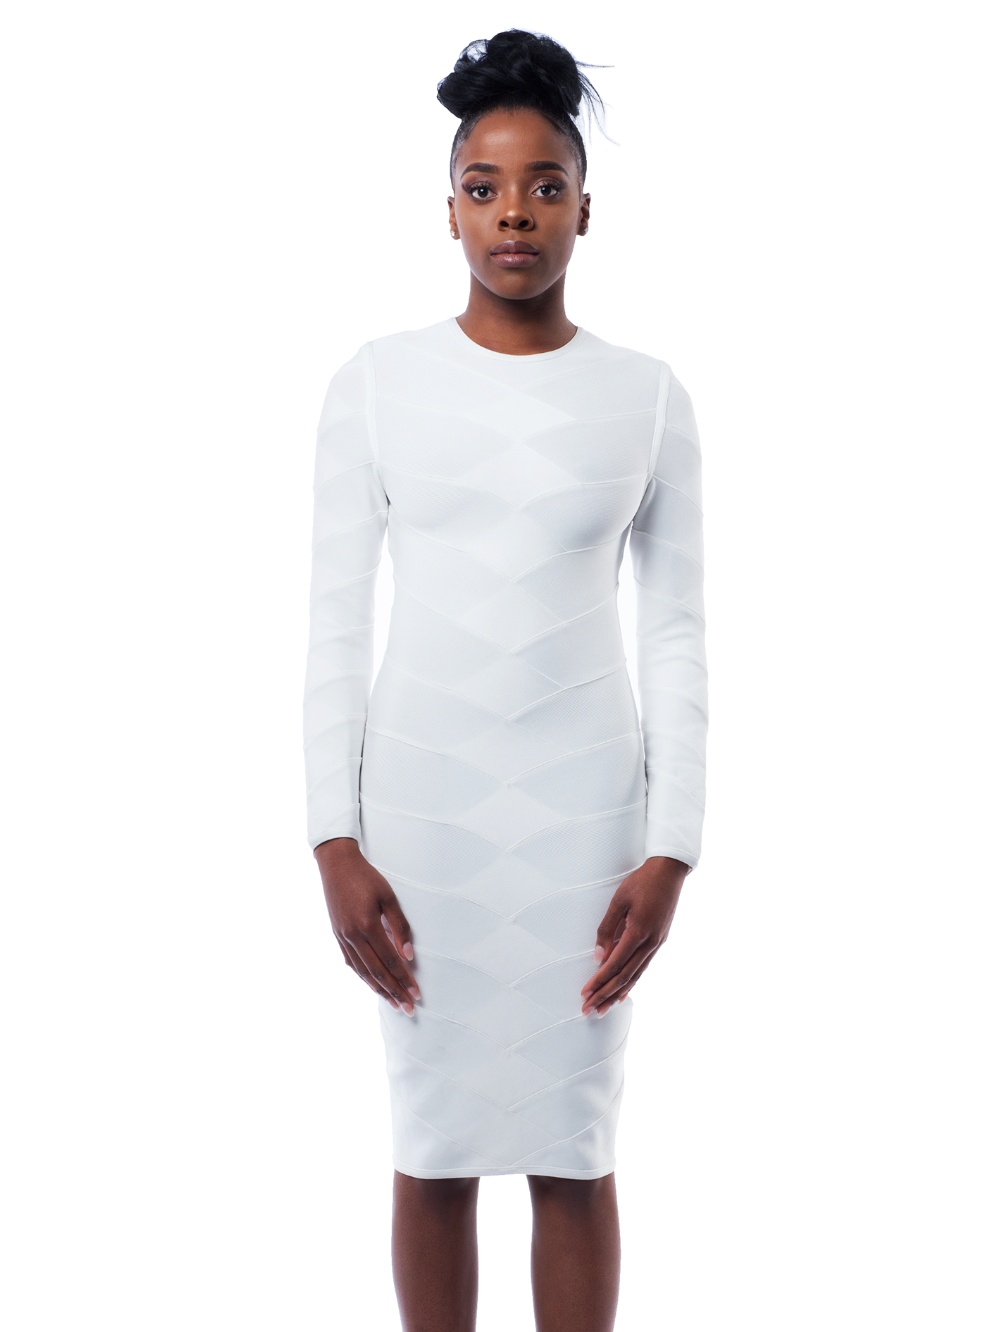 Kaiyen woven bandage dress in white